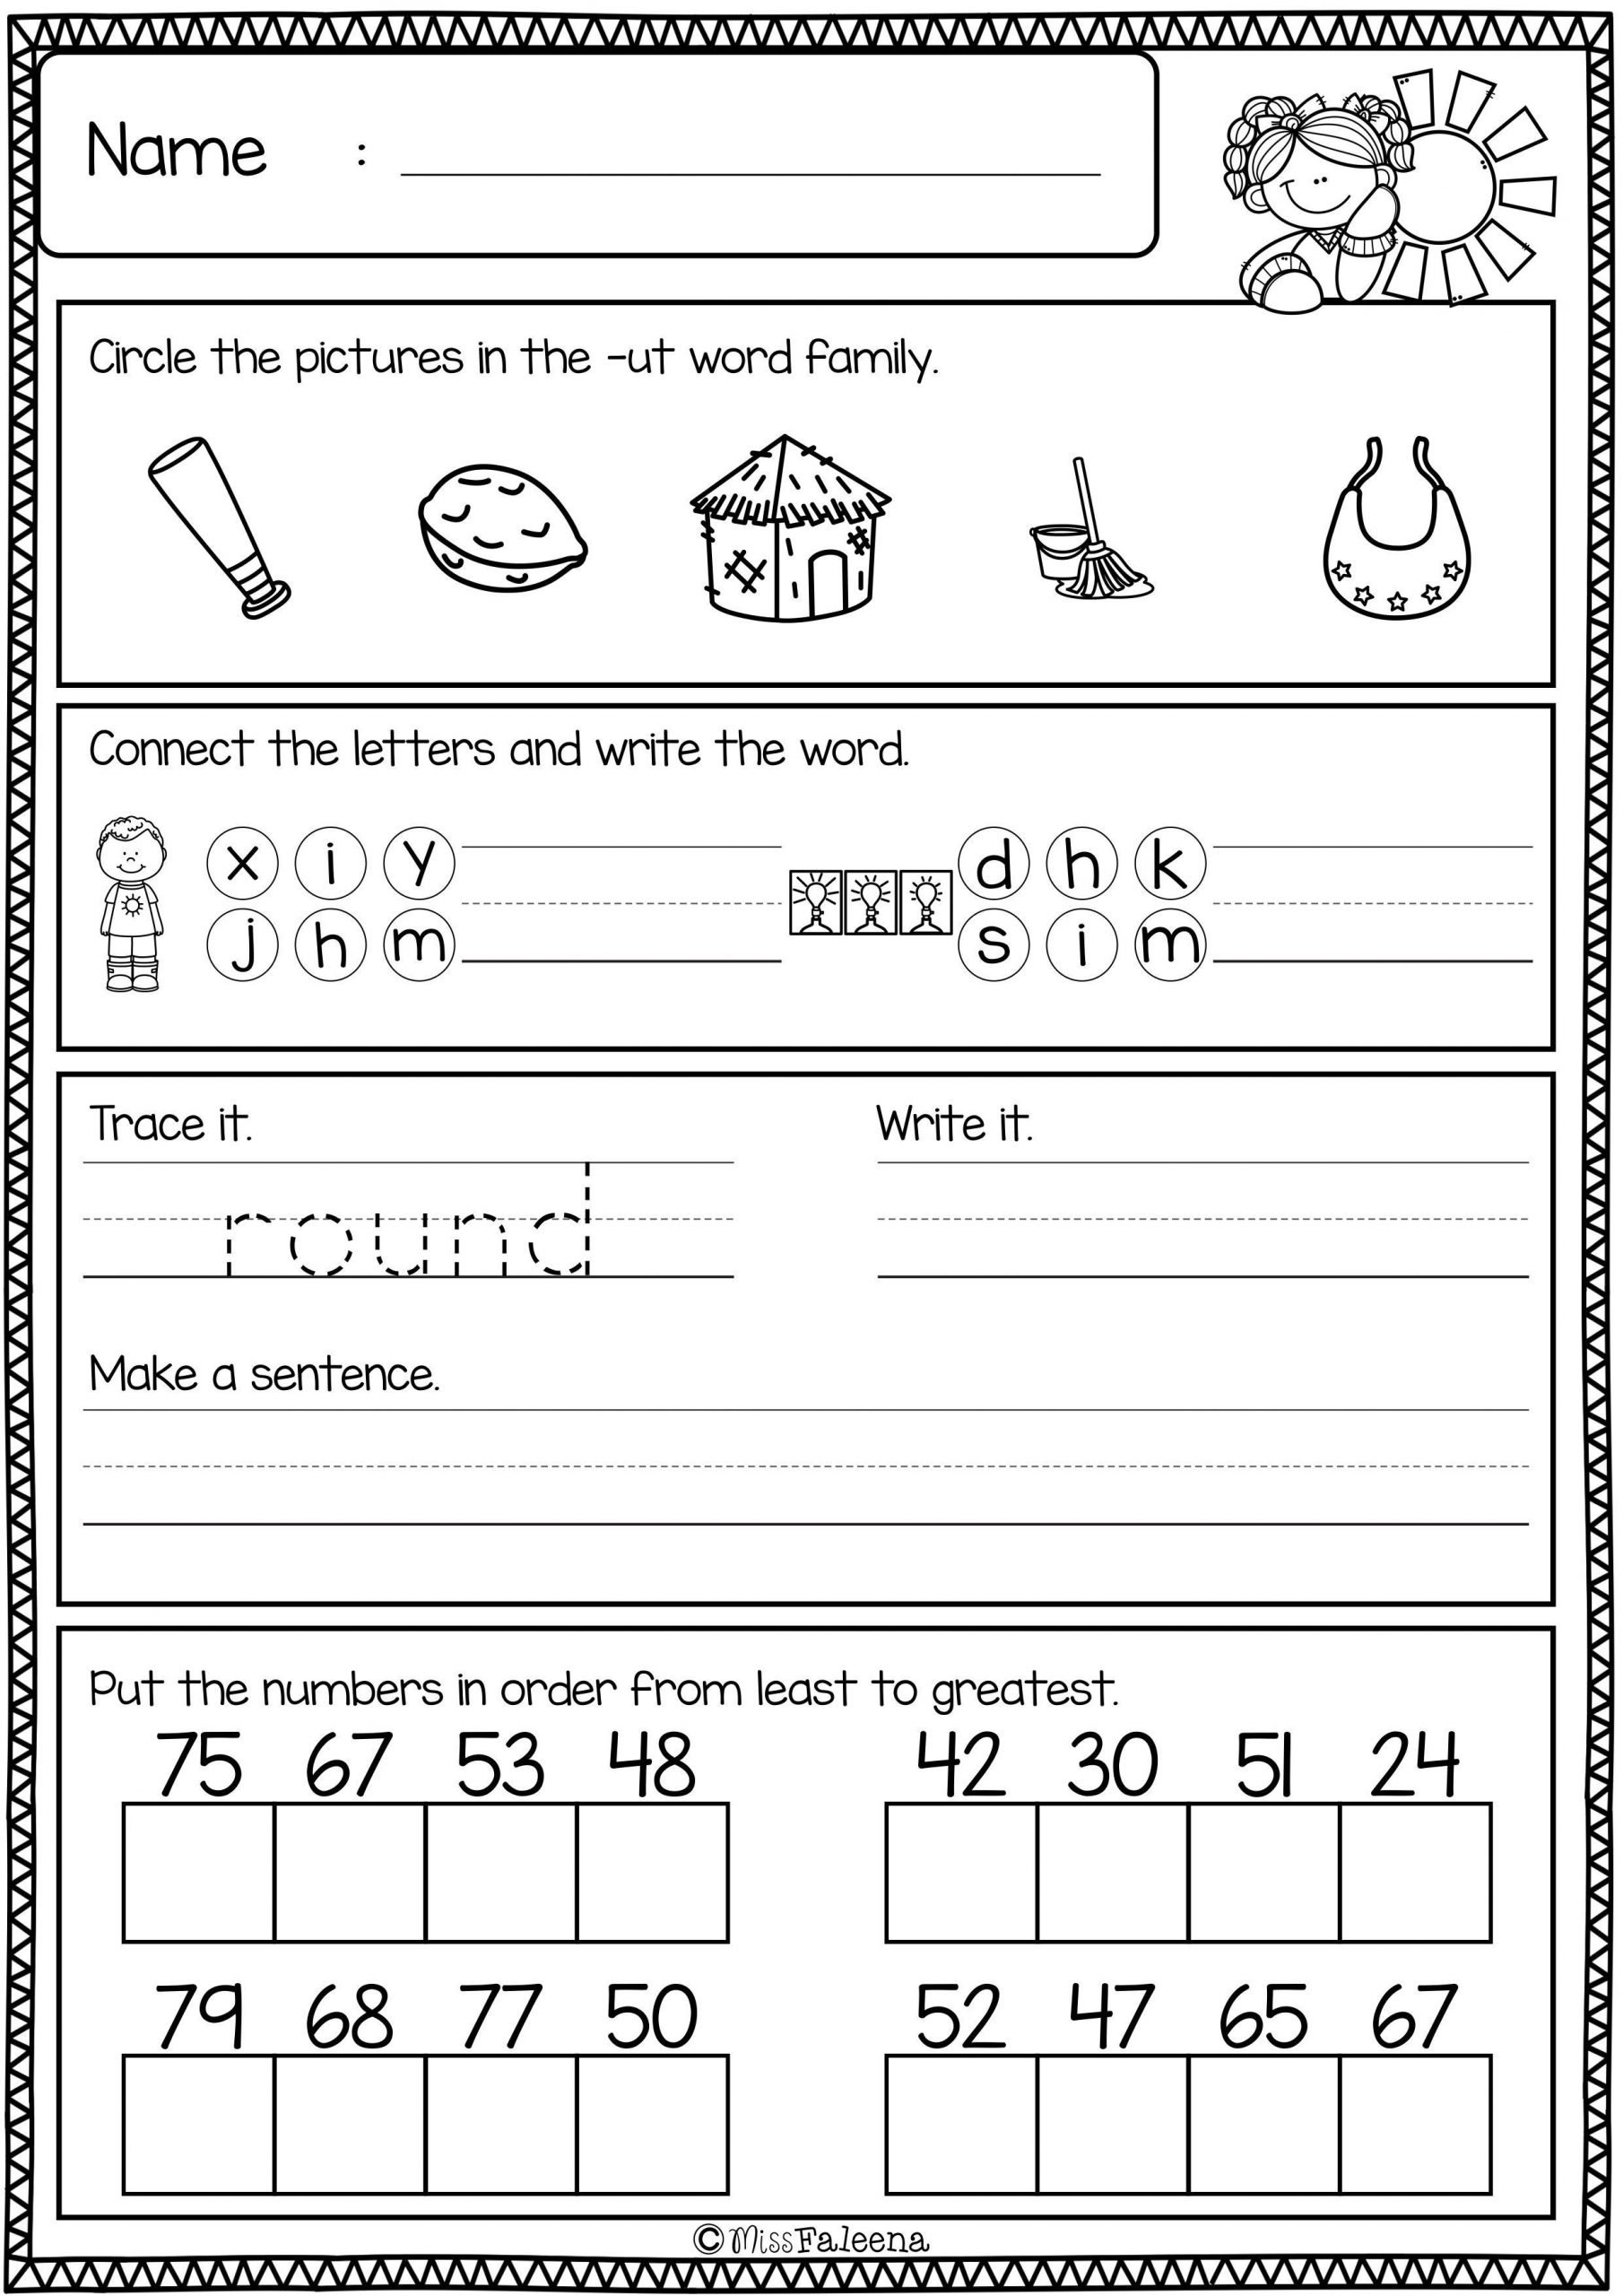 1st Grade Morning Work Worksheets First Grade Morning Work Set 2 Includes 60 Pages Of Morning